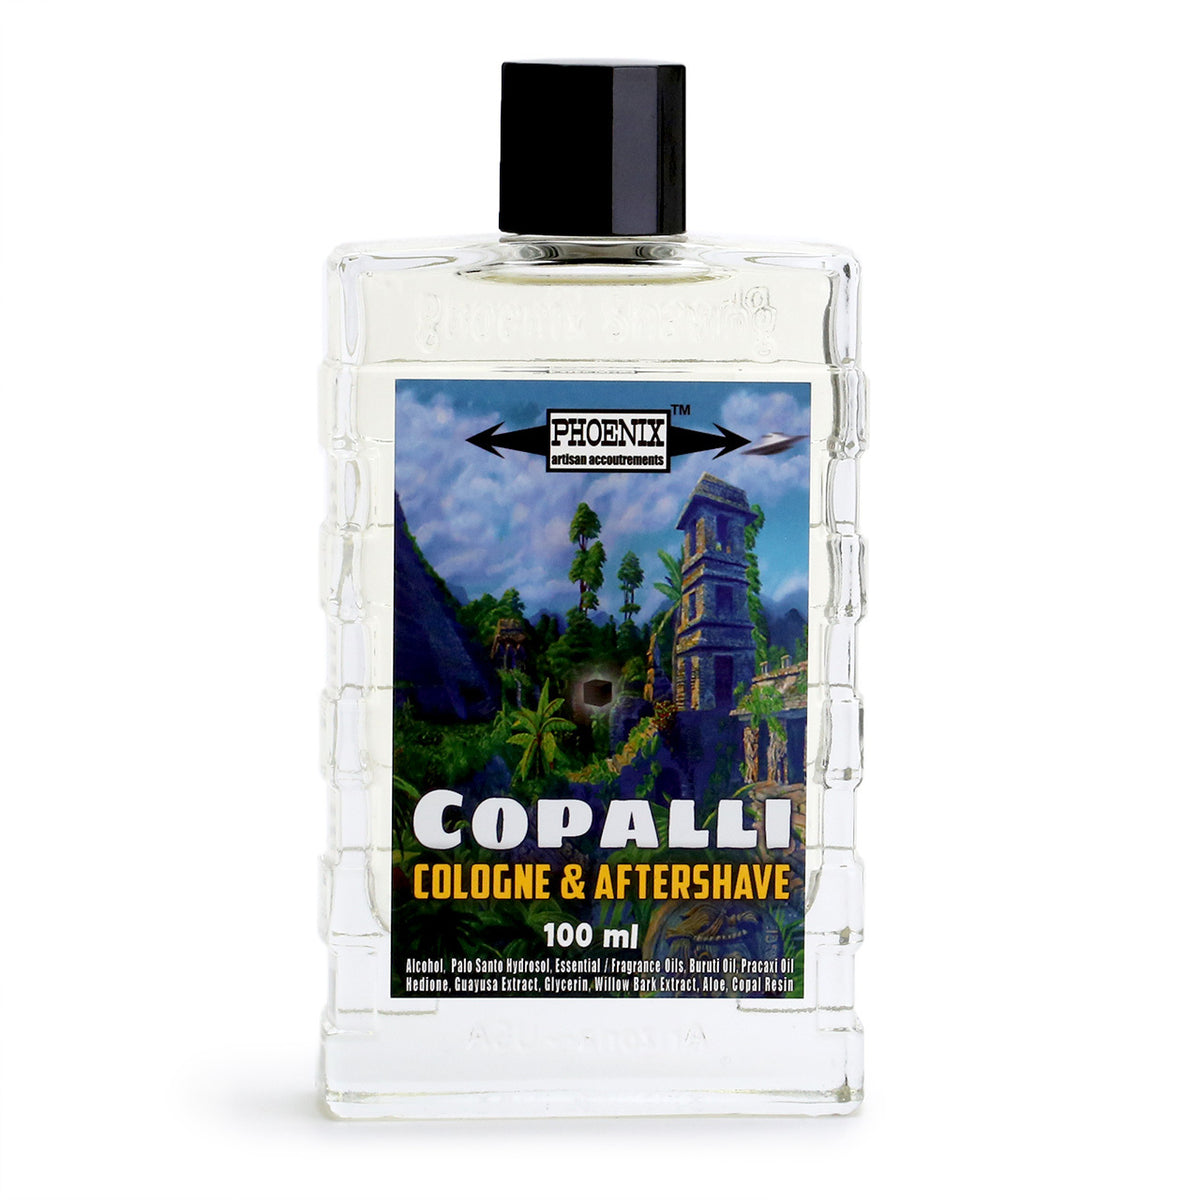 Phoenix Shaving After Shave & Cologne - Copalli